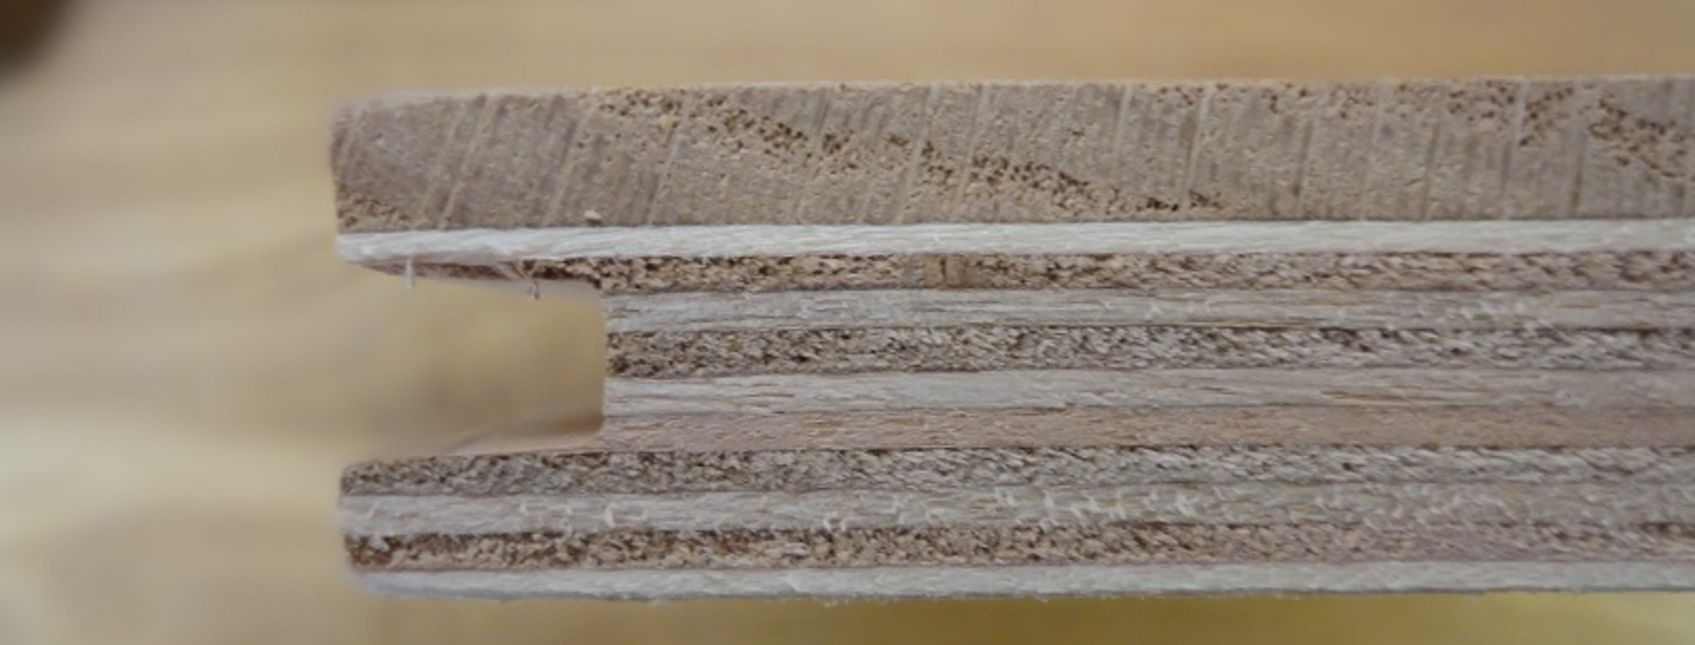 Image of laminated hardwood